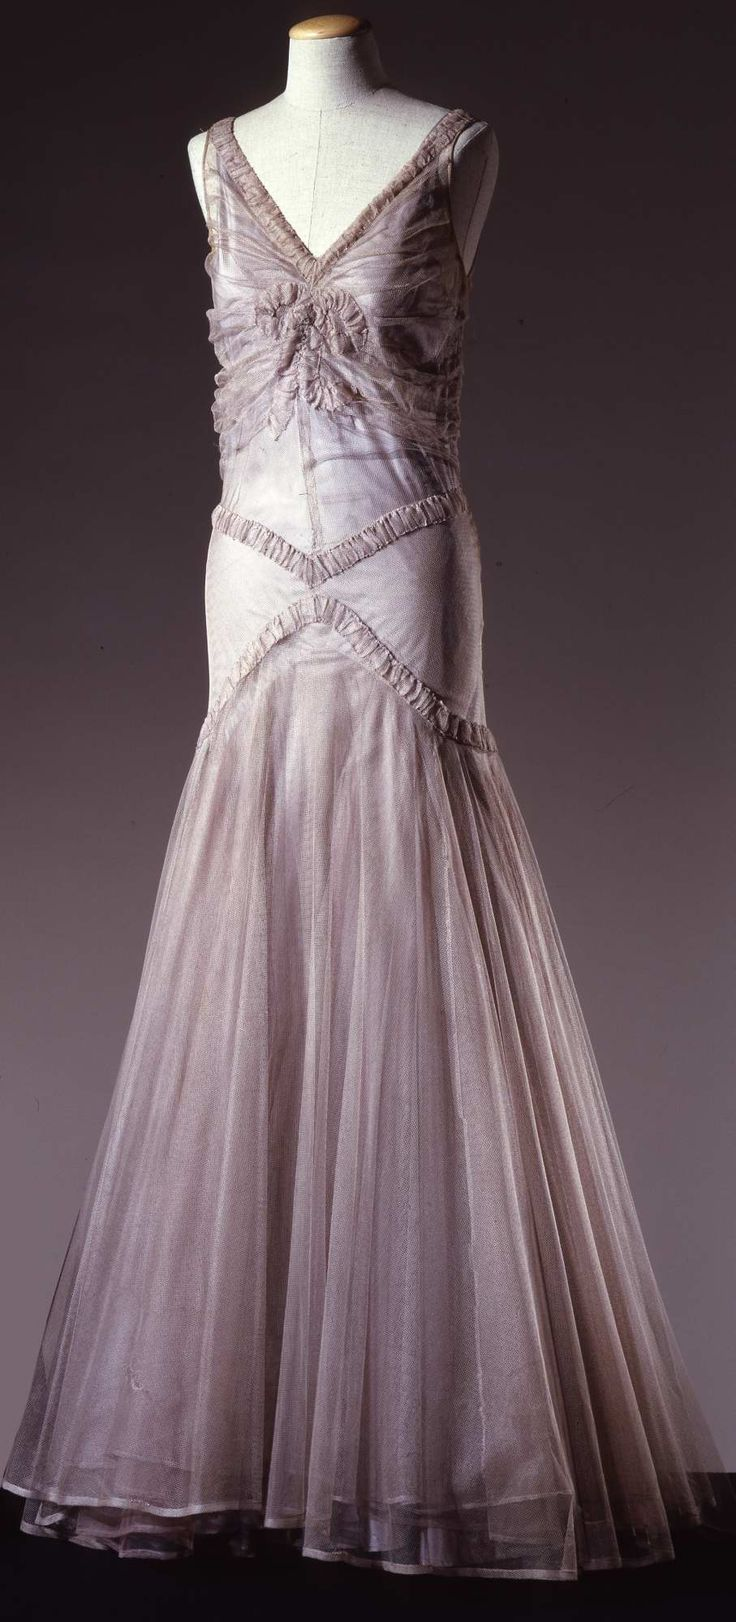 Evening dress, c. 1930-32. Galleria del Costume di Palazzo Pitti.